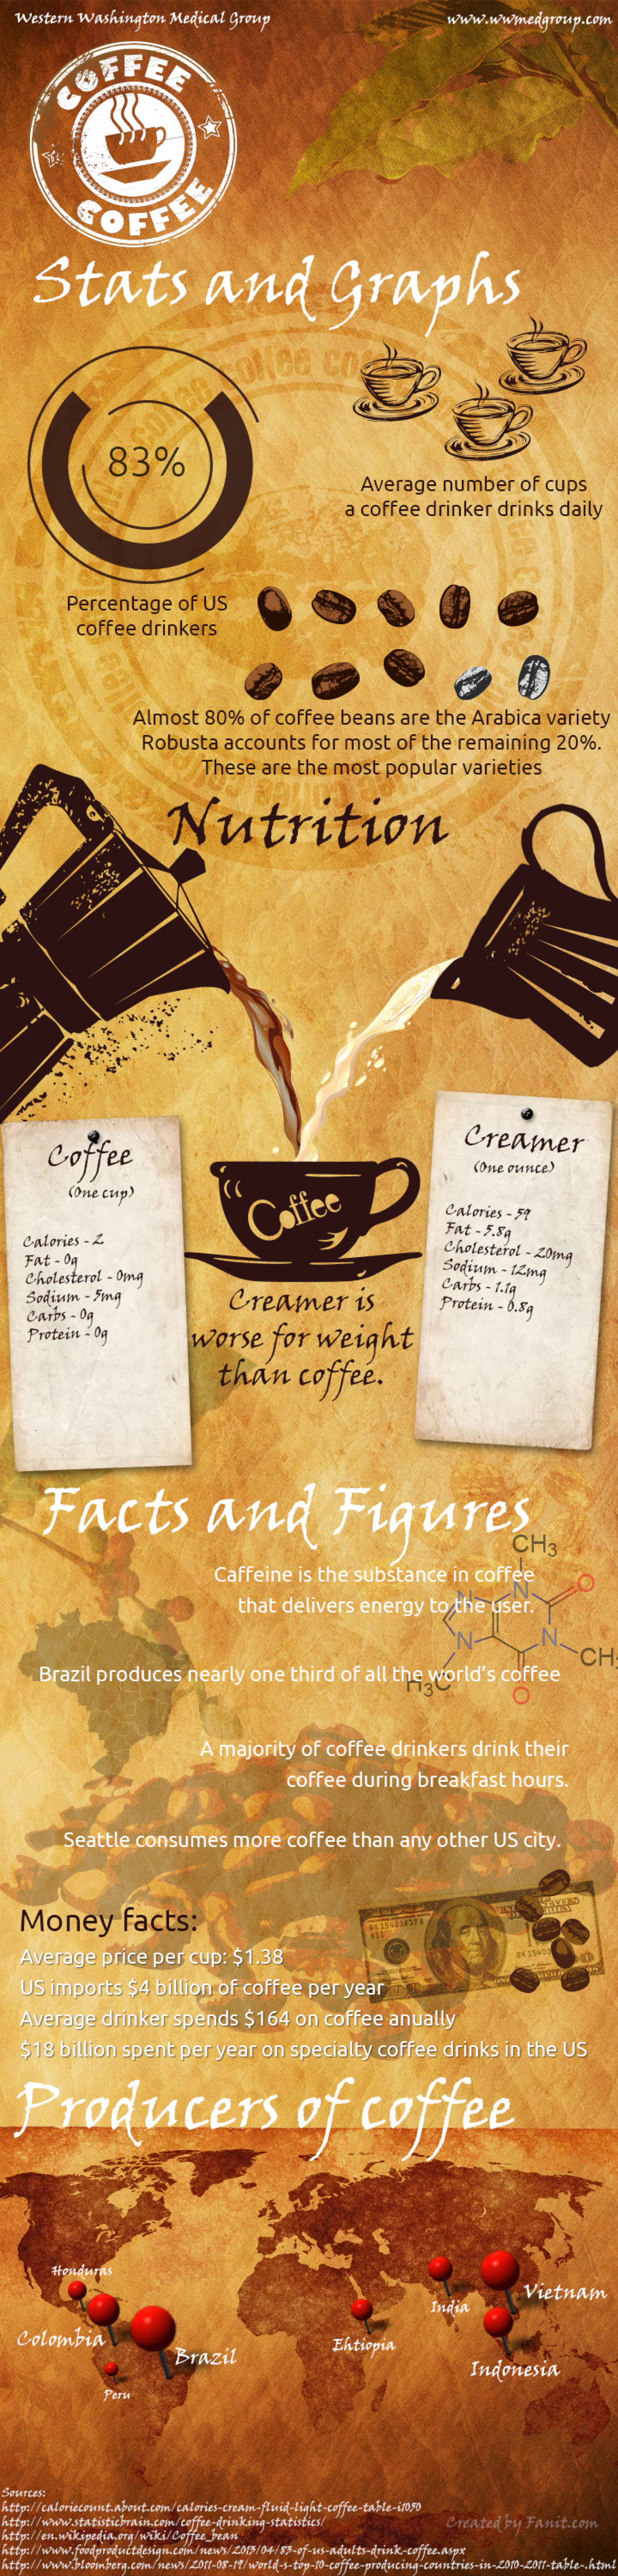 Coffee: Health Benefits and Facts Infographic